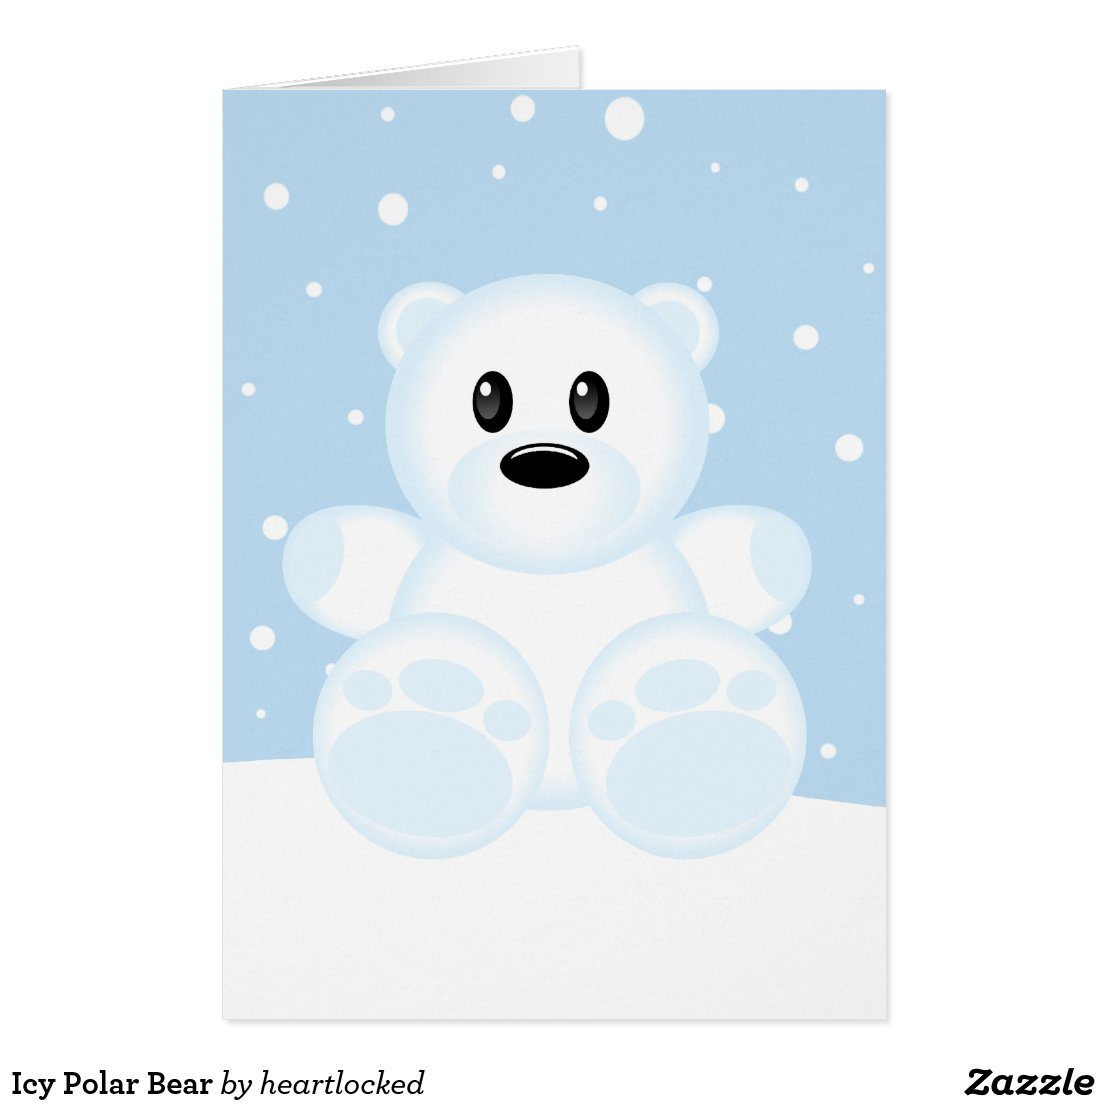 Icy Polar Bear